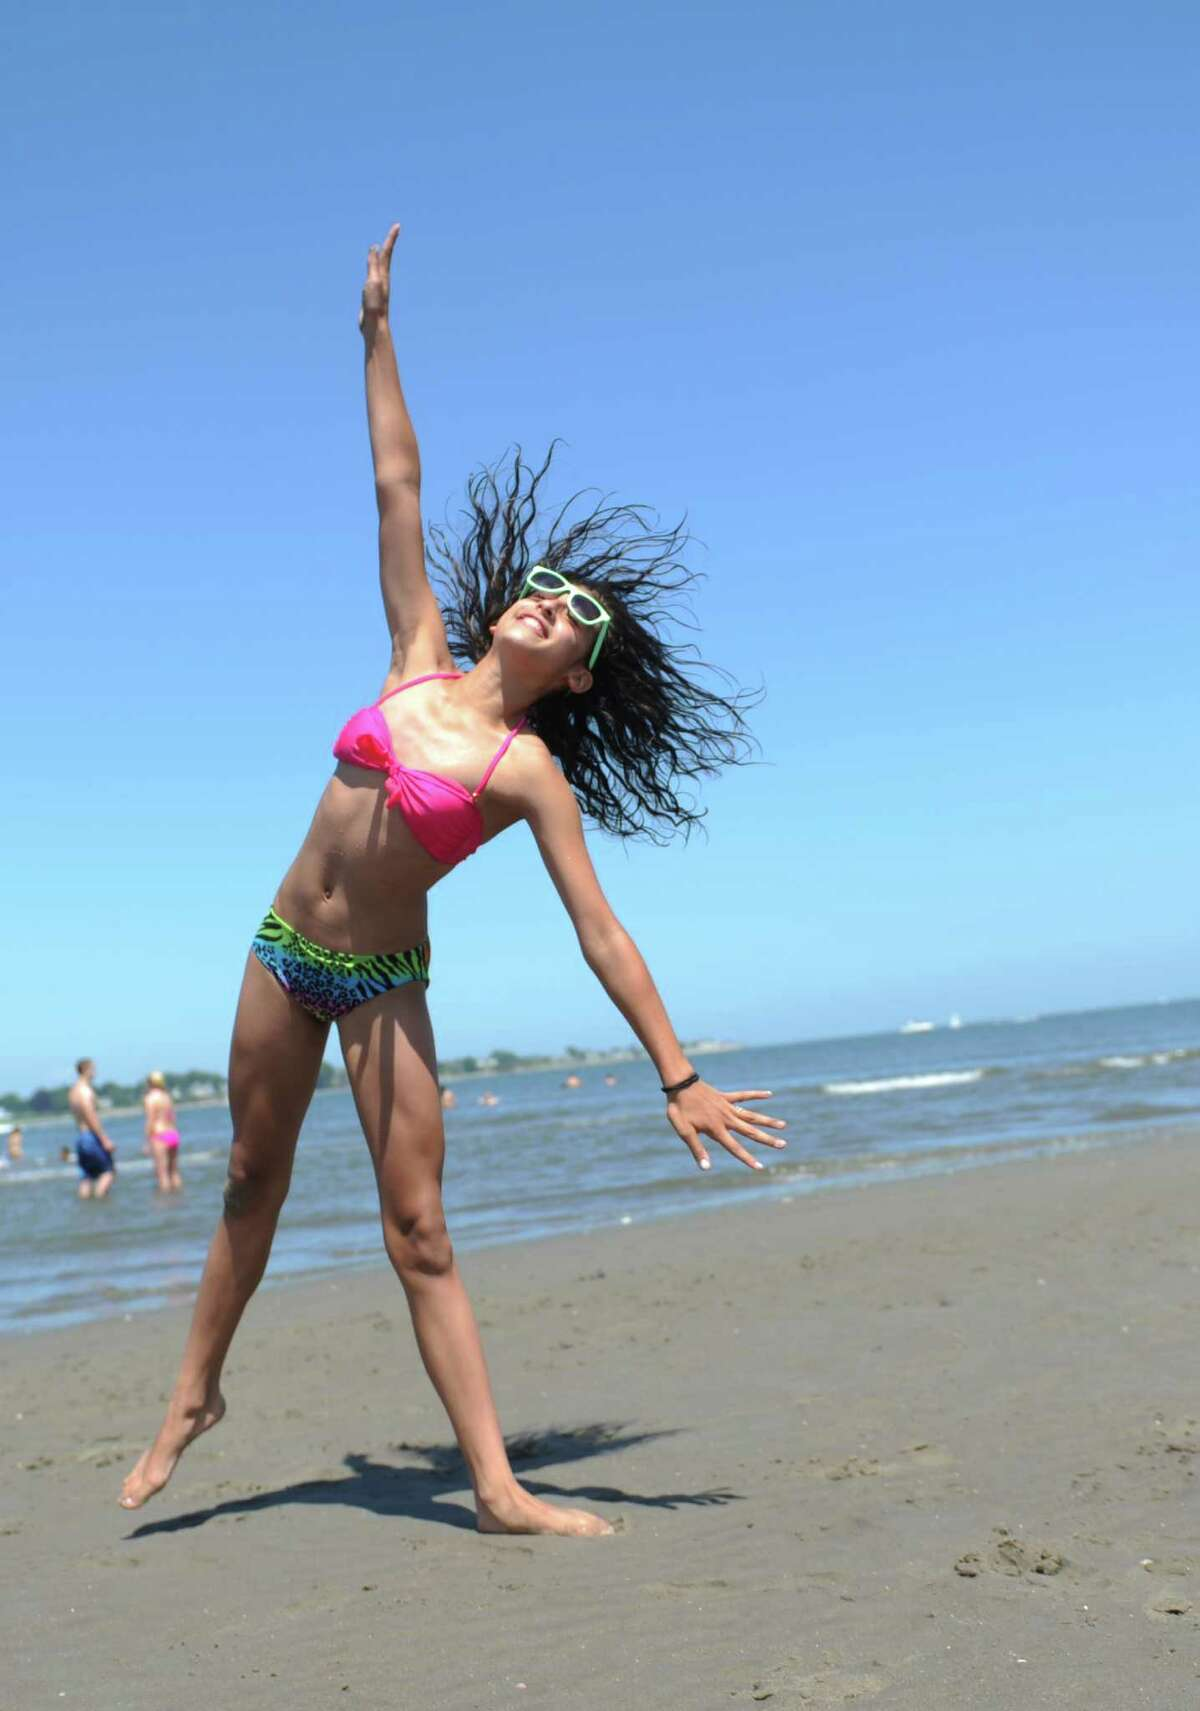 A young girl turns cartwheels on a hot holiday Wednesday, July 4, 2013 at Silver Sands State Park in Milford, Conn.